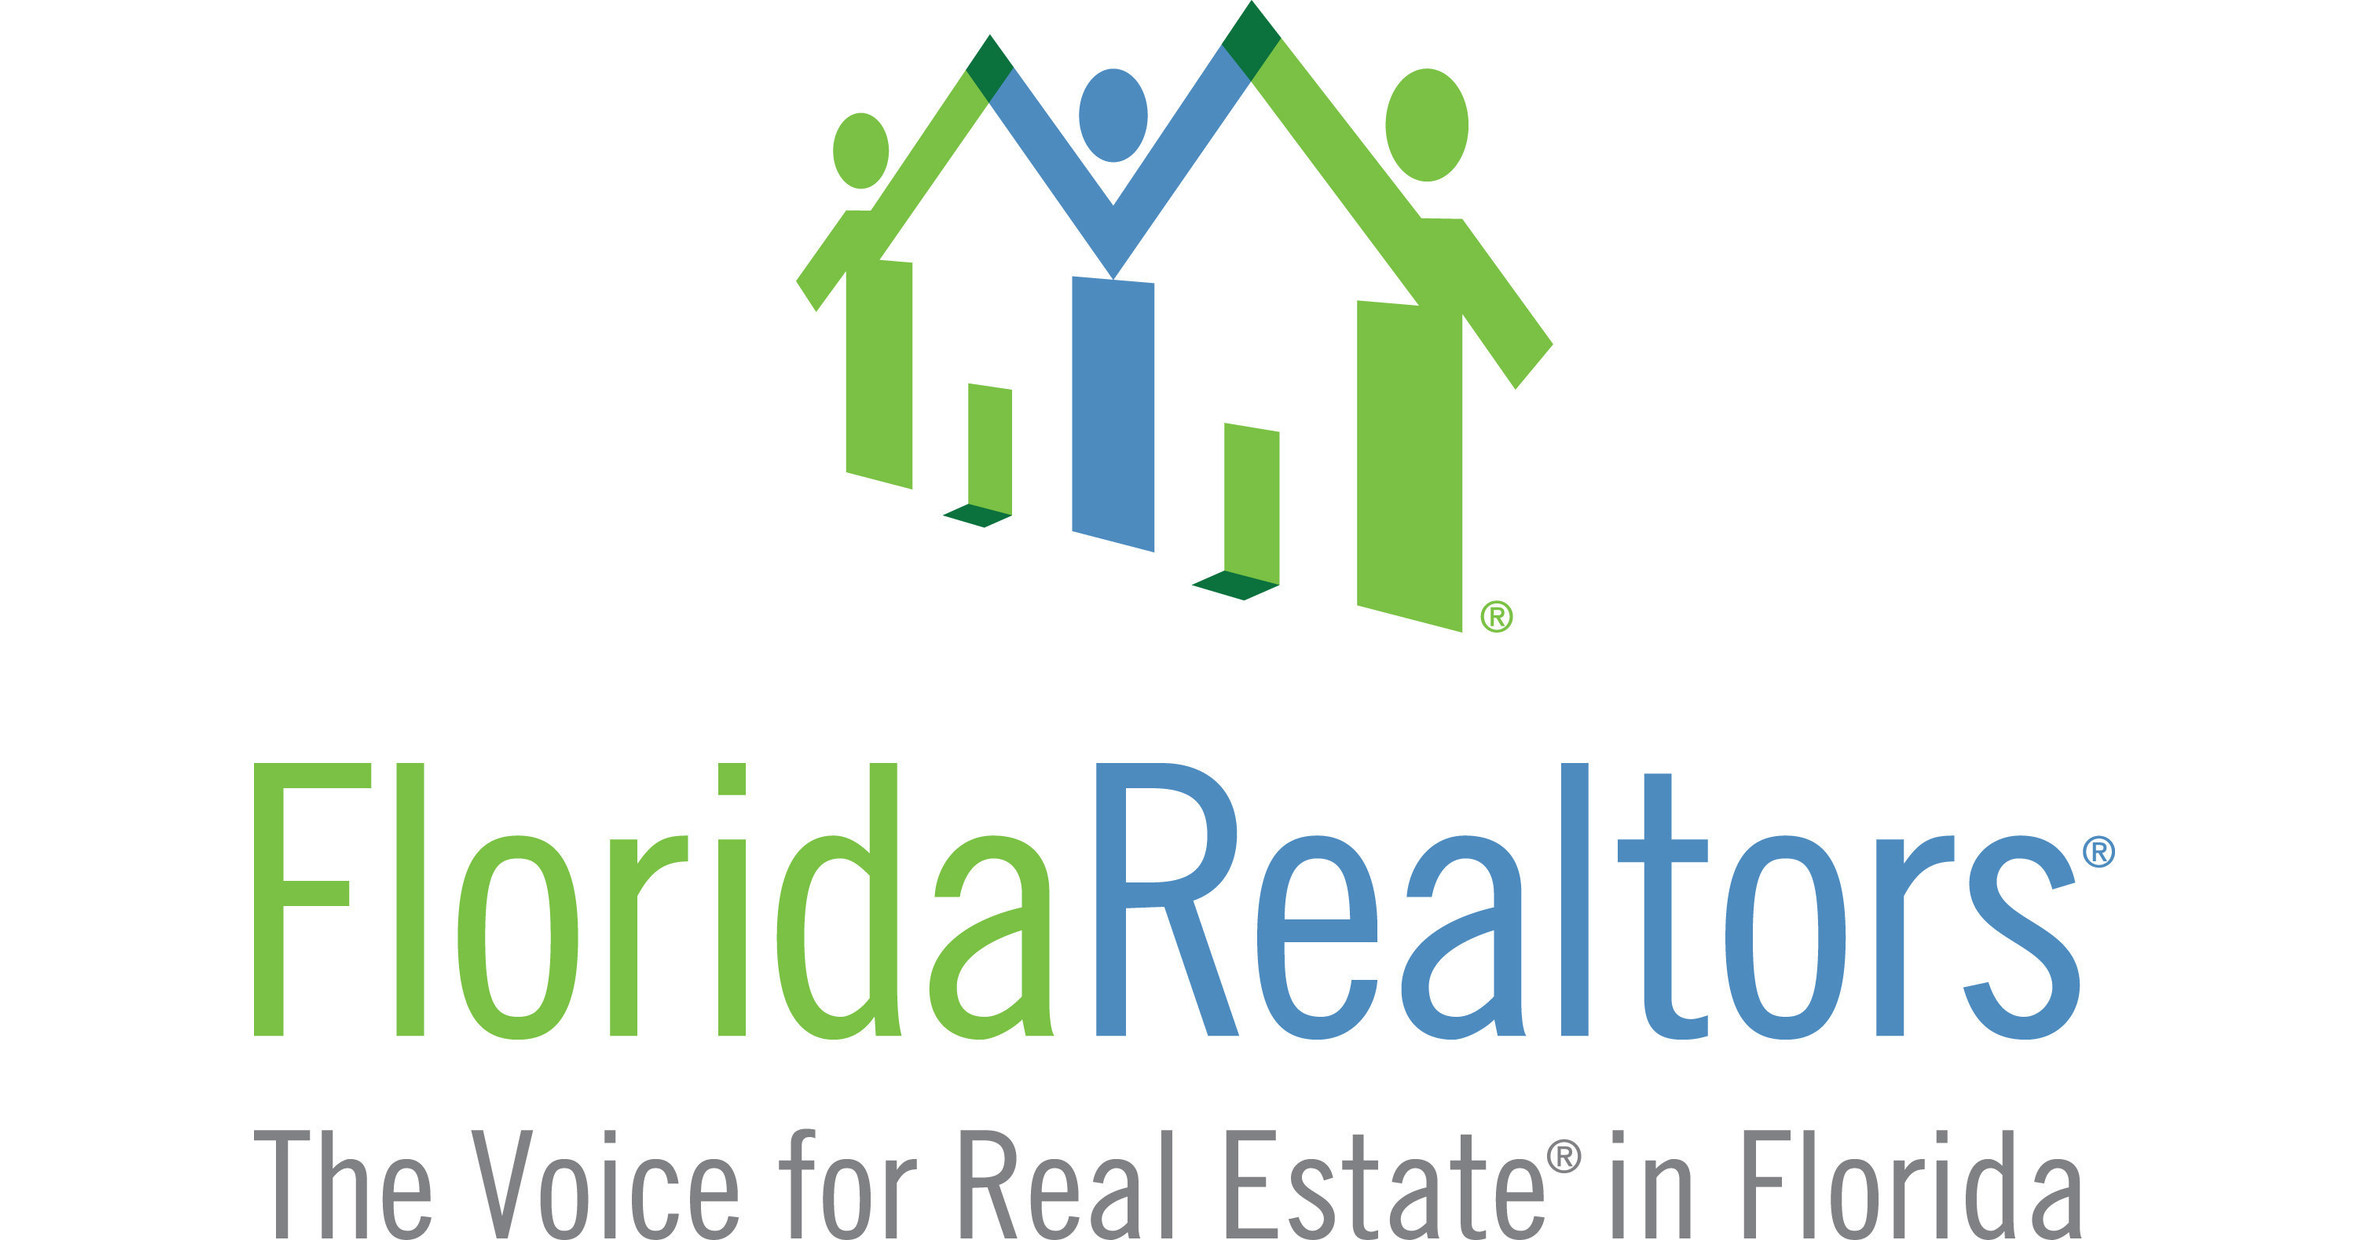 Fla.'s Housing Market Wraps Up 2020 with Strong Gains Despite COVID-19